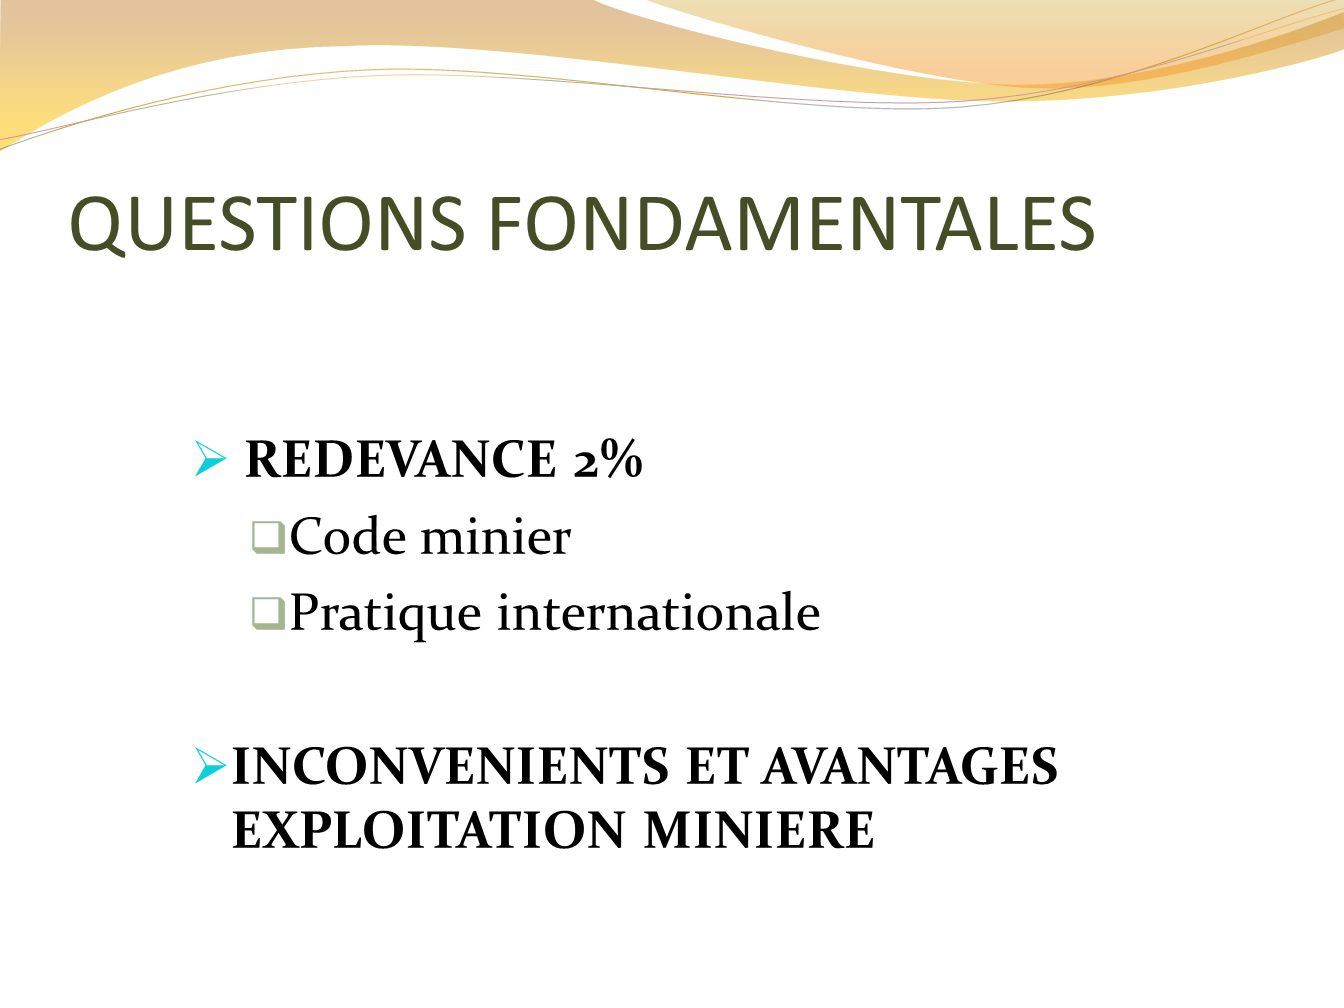 QUESTIONS FONDAMENTALES REDEVANCE 2% Code minier Pratique internationale INCONVENIENTS ET AVANTAGES EXPLOITATION MINIERE